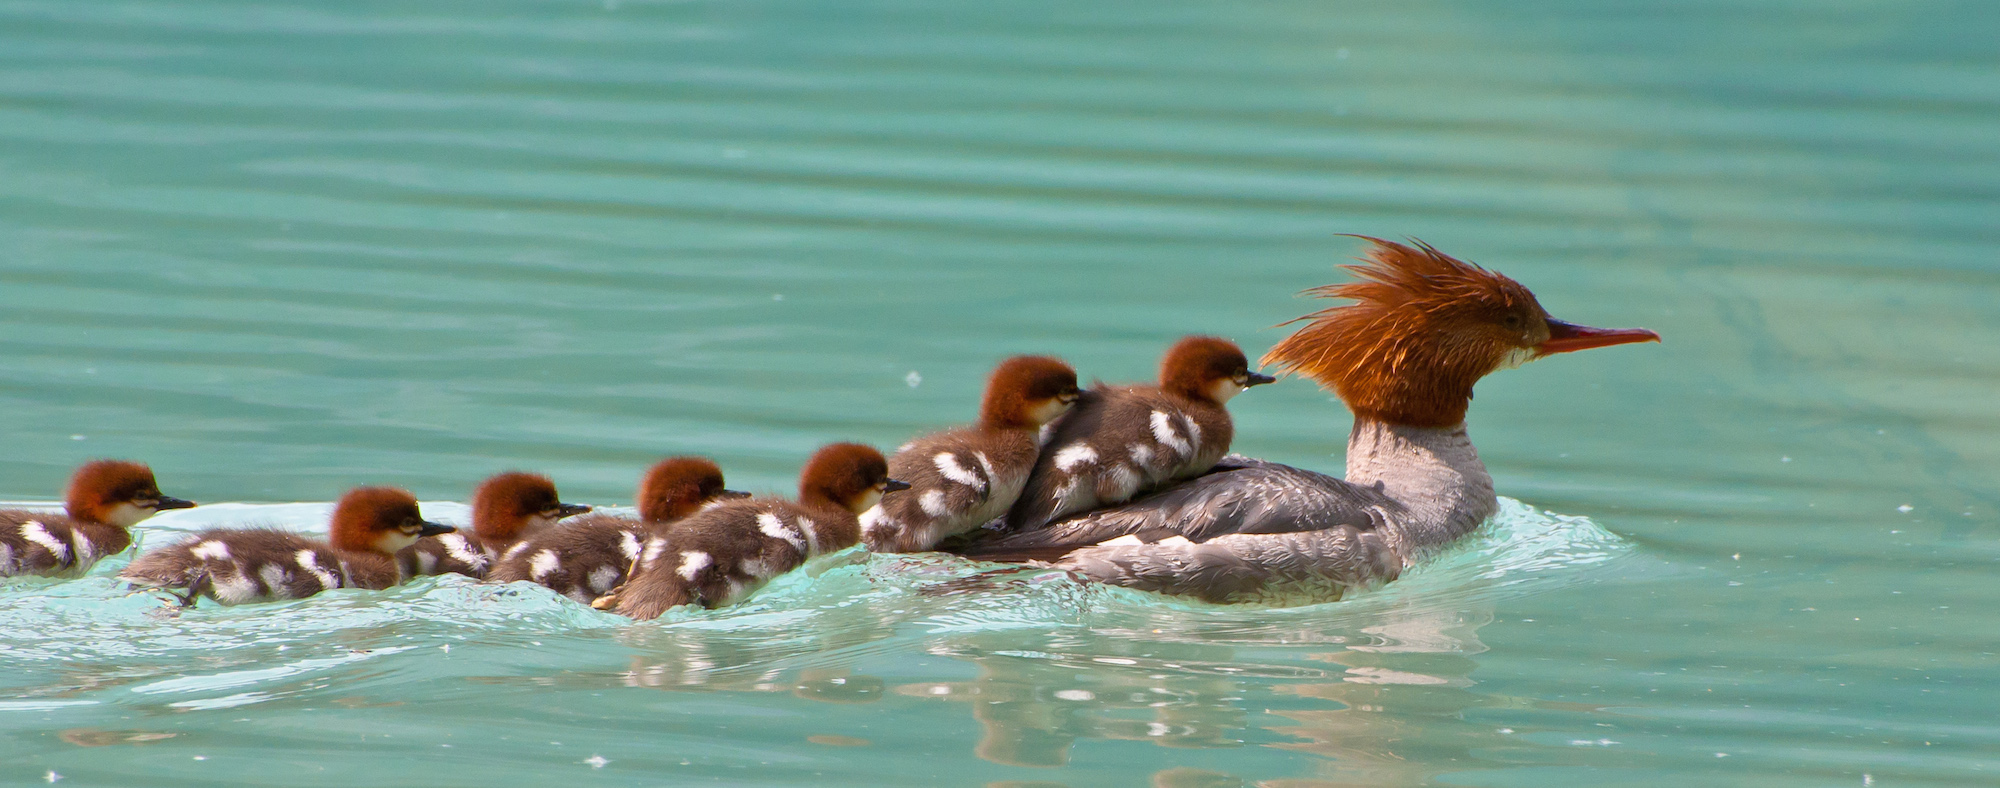 baby ducks climbing up onto a large duck swimming in a pond